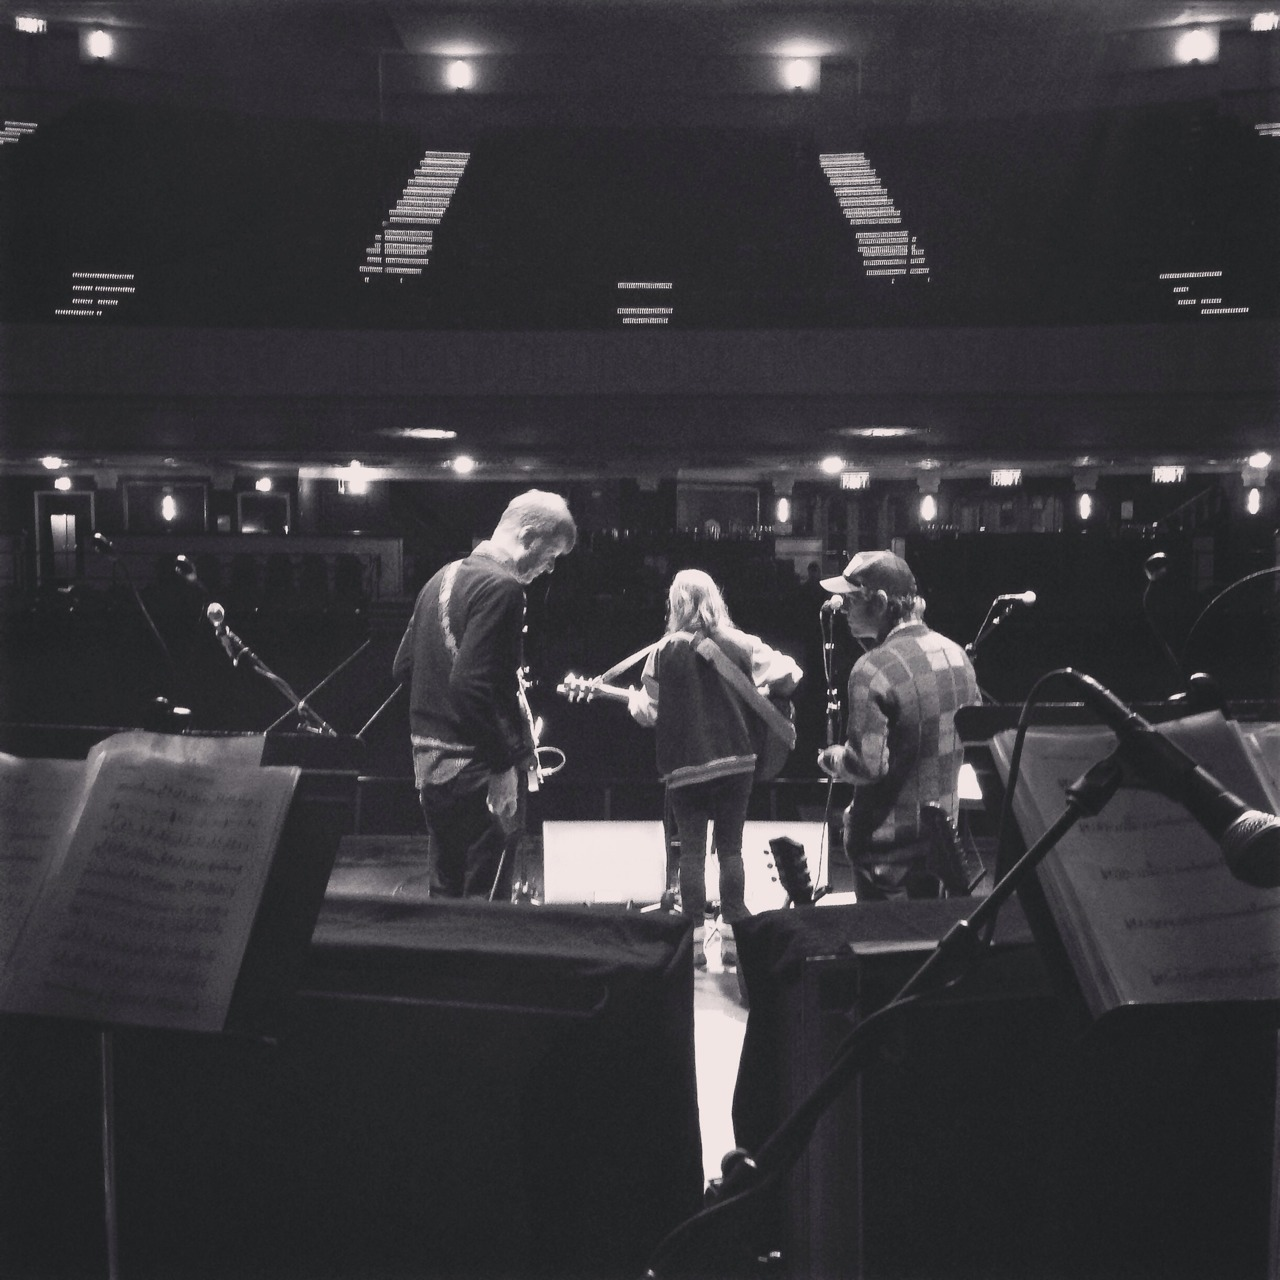 Nels Cline (Wilco), Sam Cohen (Yellowbirds, Apollo Sunshine) and Jocie Adams (The Low Anthem) at soundcheck for The Complete Last Waltz a few weeks back.